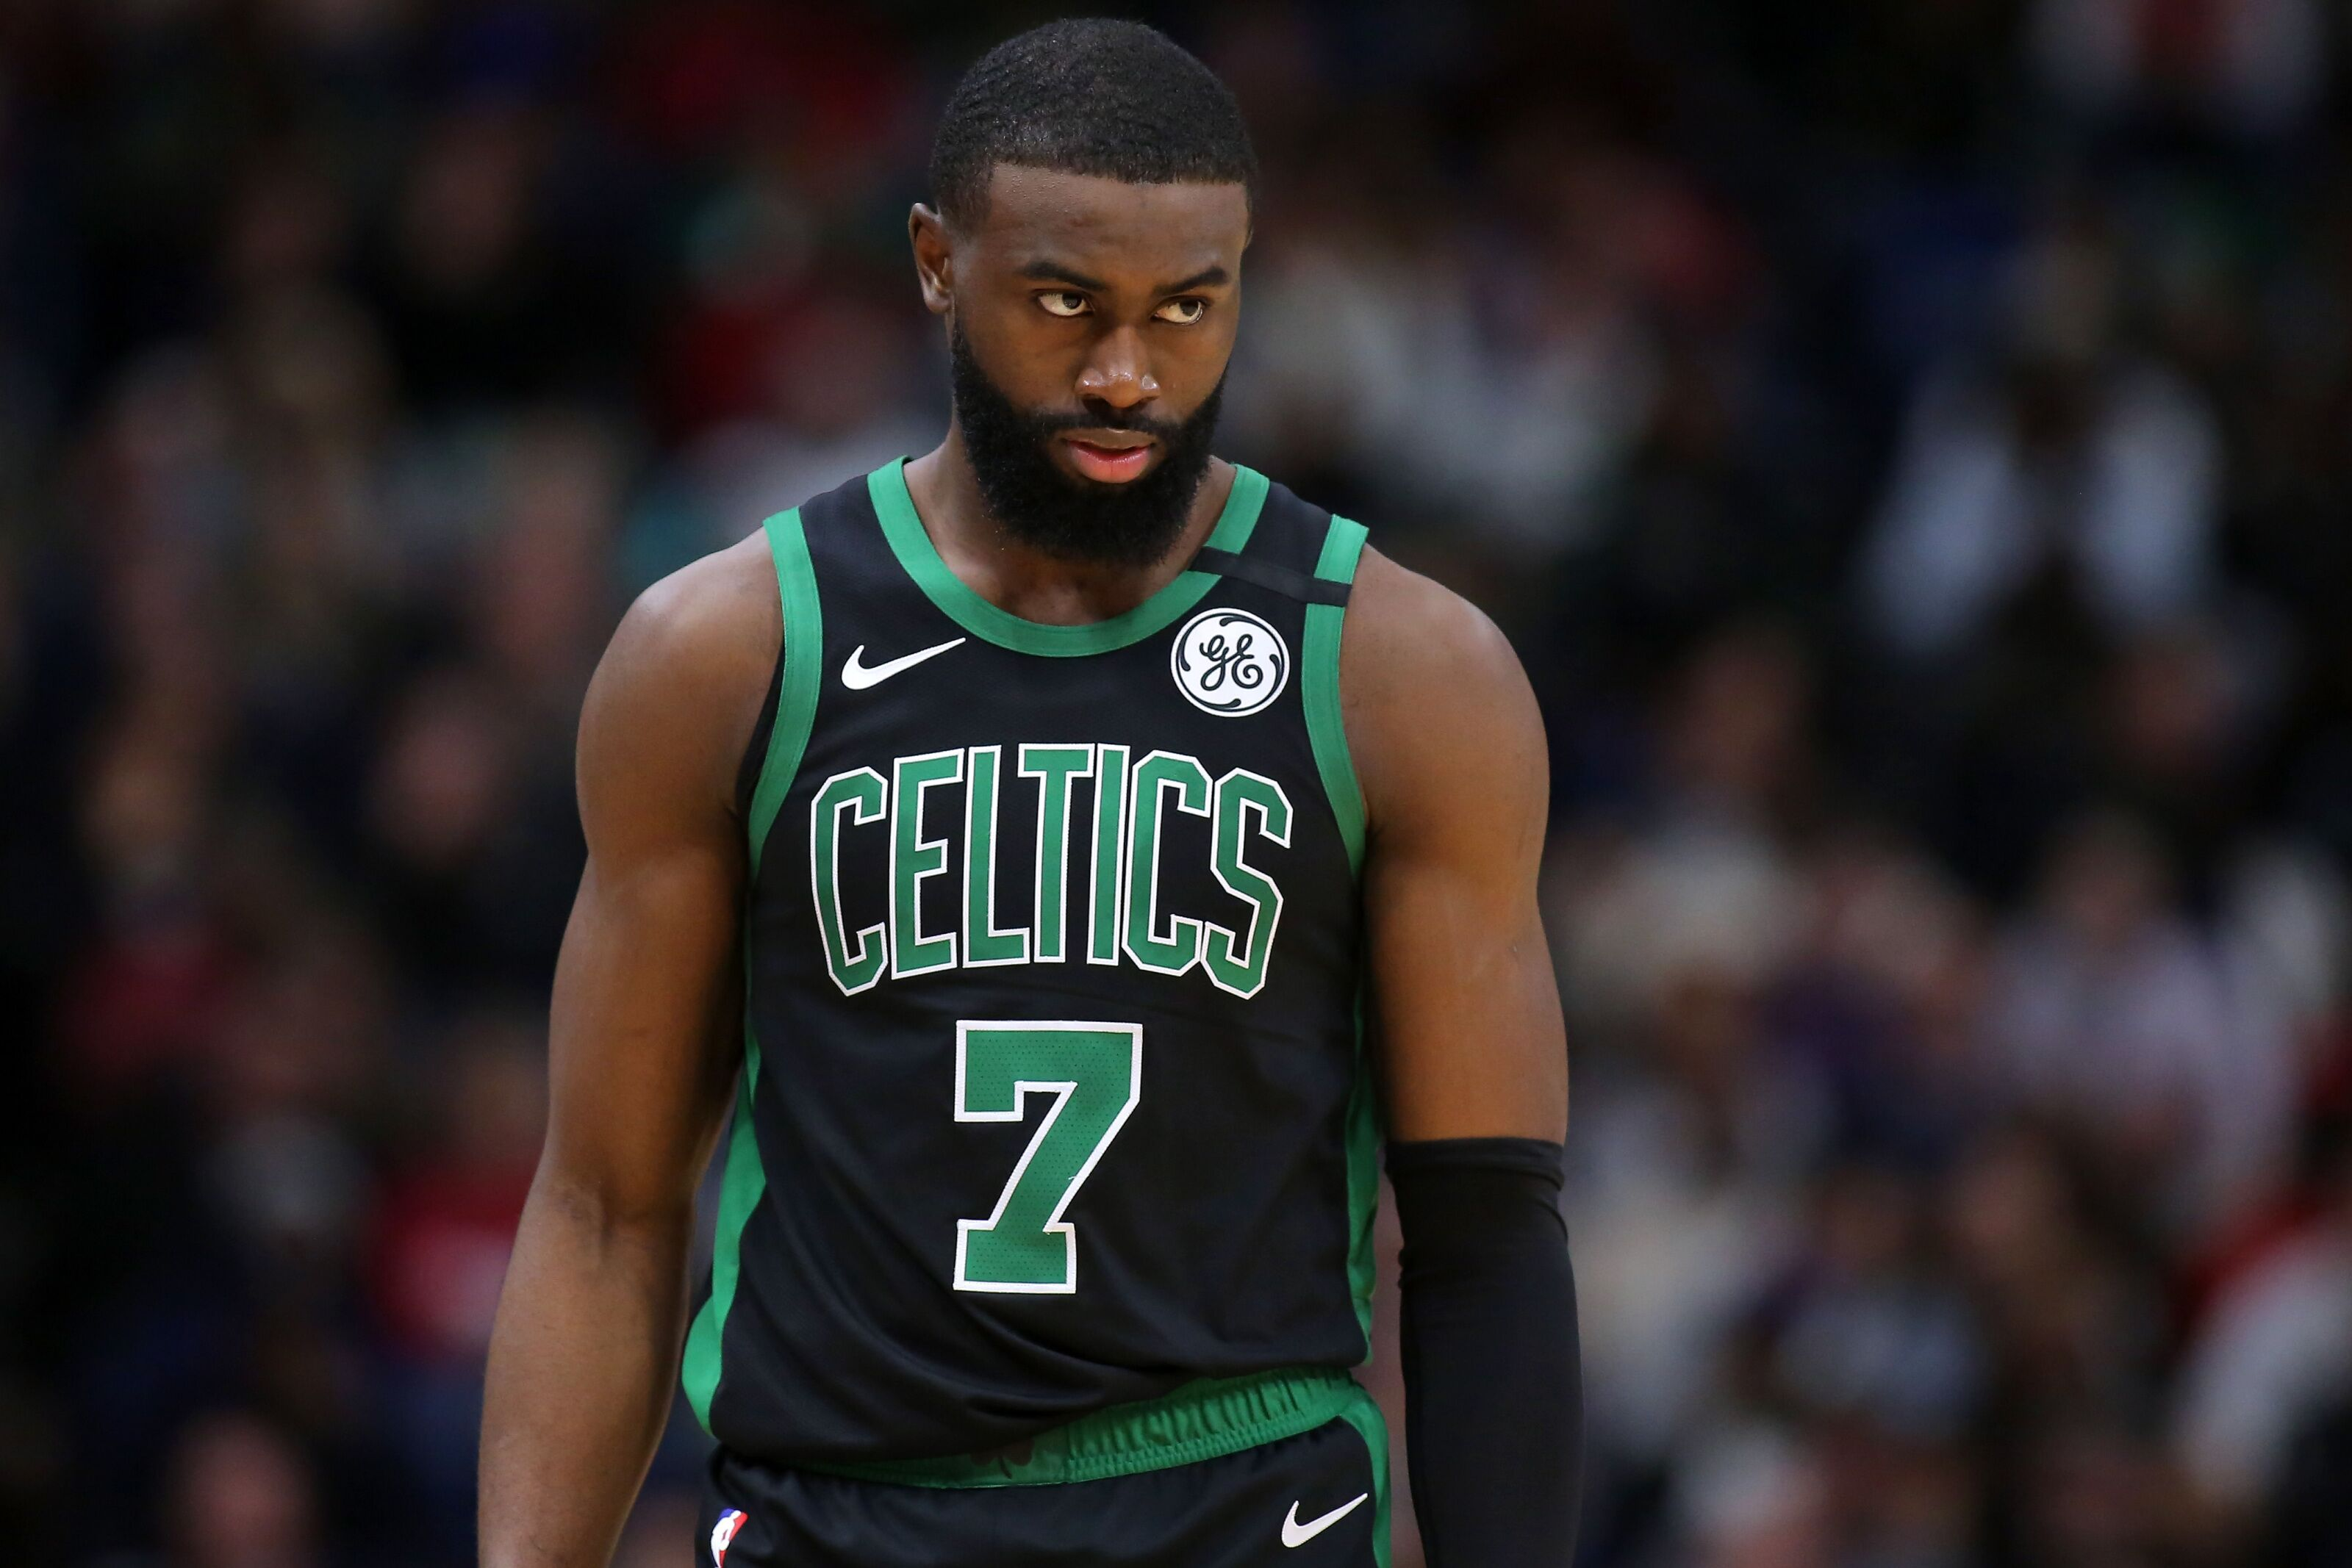 Boston Celtics: Jaylen Brown deserved All-Star recognition over Tatum